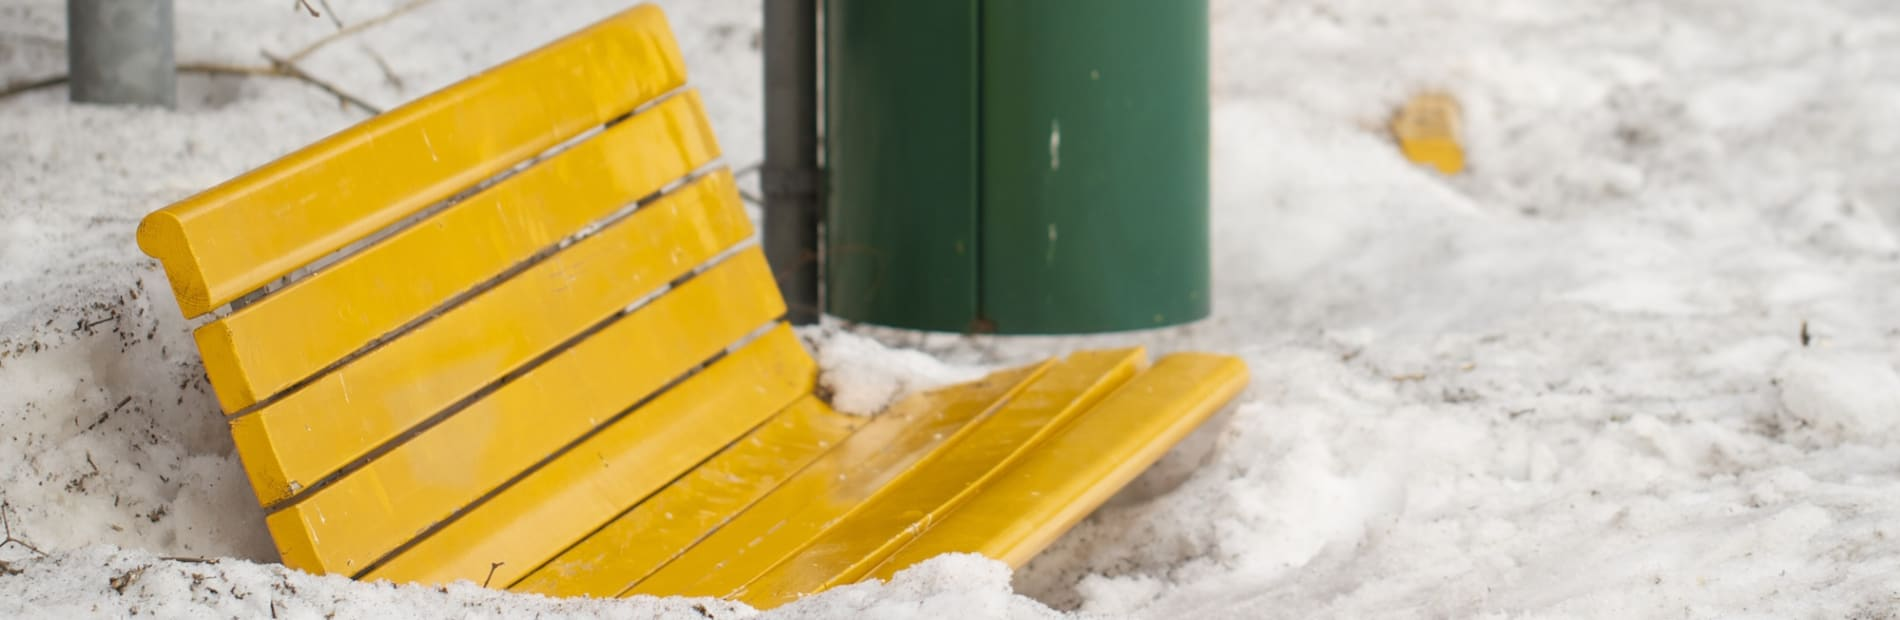 street furniture design for the visually impaired | marshalls